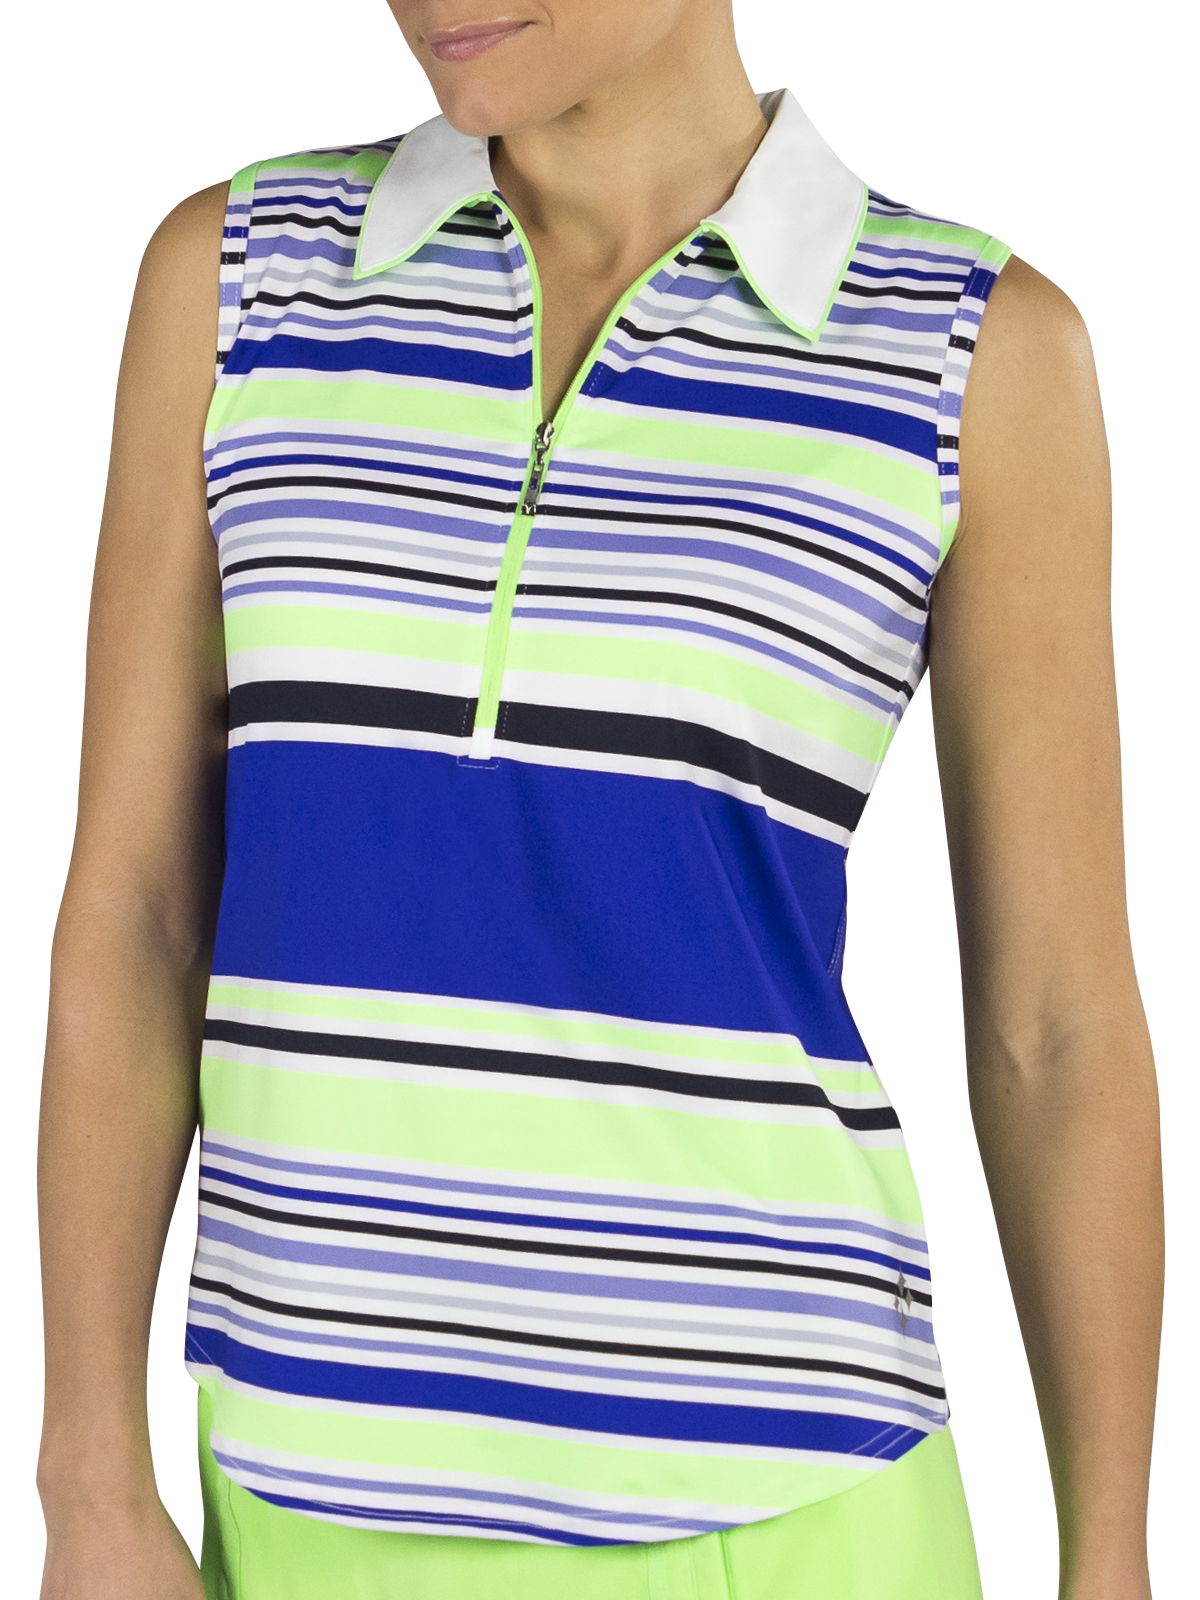 3b5d73d55ab2e7 Earn your style points during your next round wearing the Jofit Tipped  Stripe golf polo. With soft jersey fabric and moisture-wicking protection  that dries ...